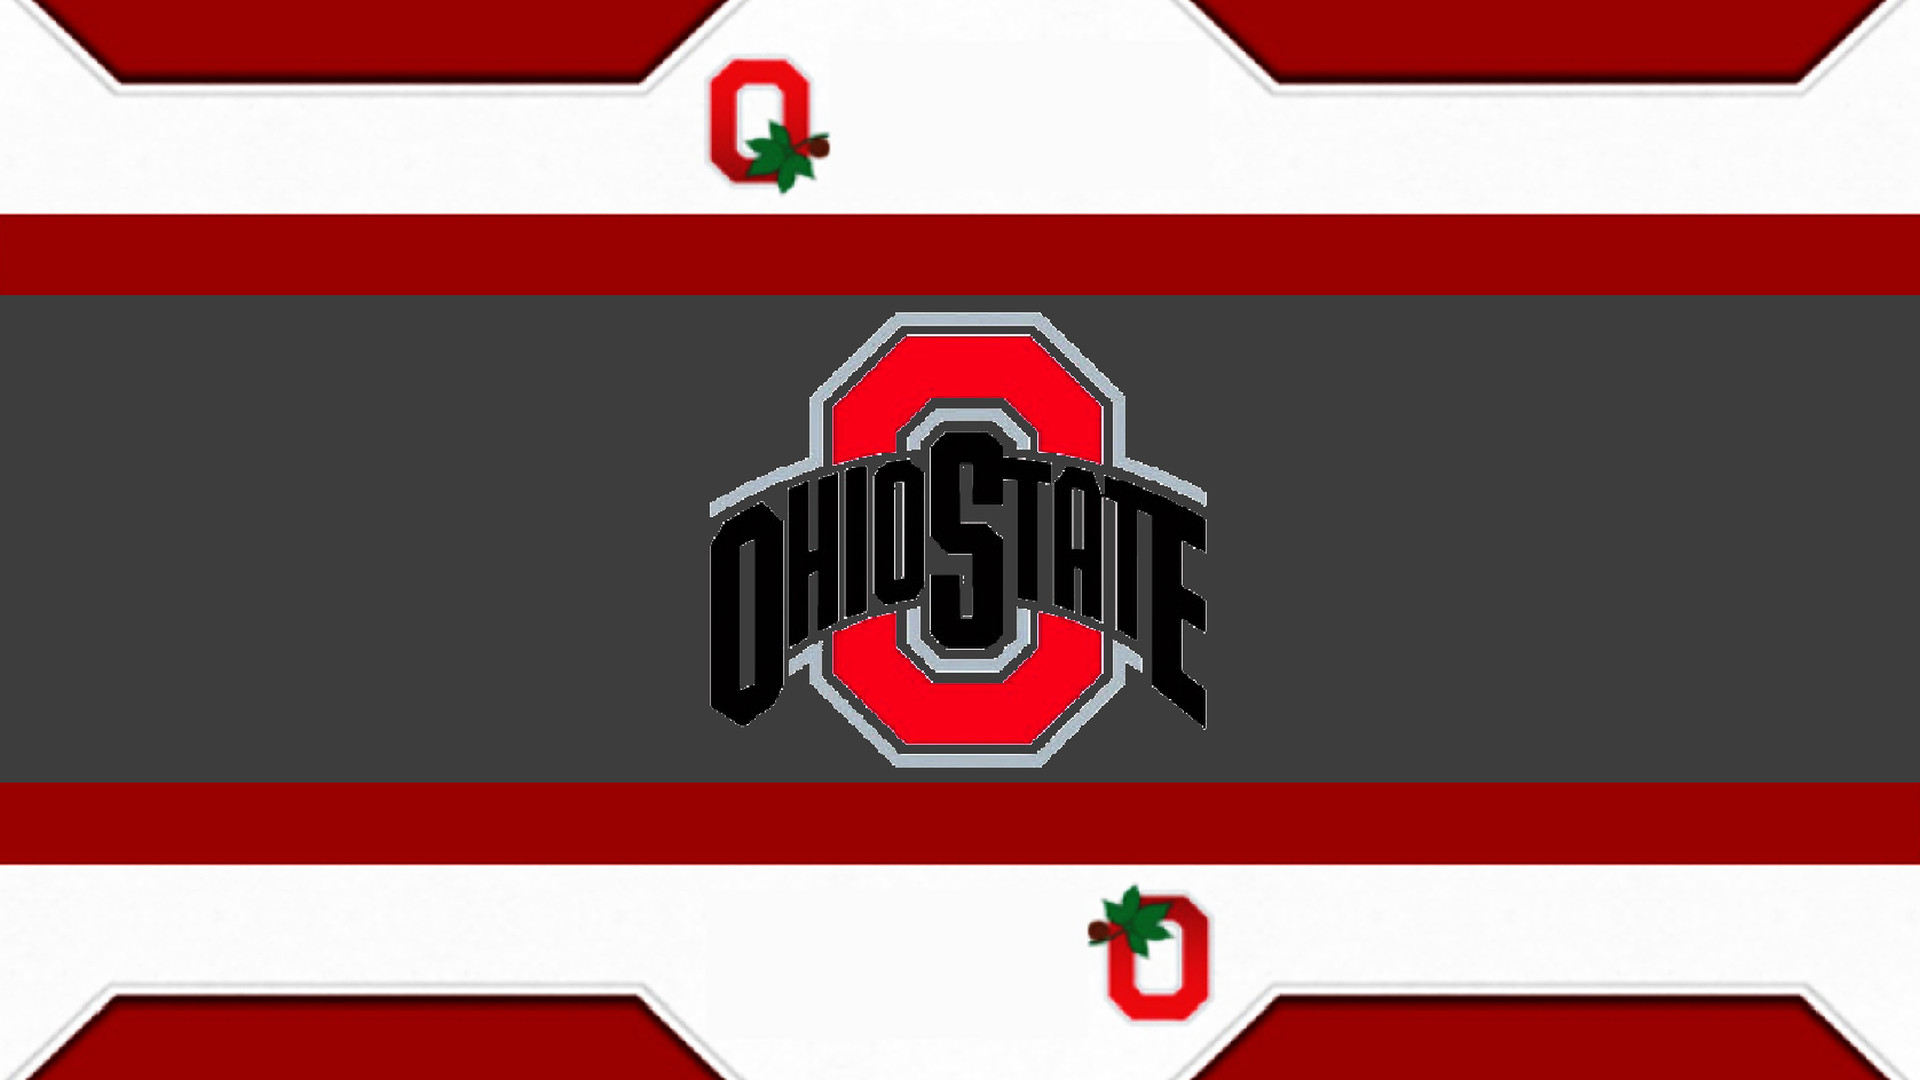 Ohio State Logo Wallpaper: Ohio State Buckeyes Wallpaper HD (86+ Images